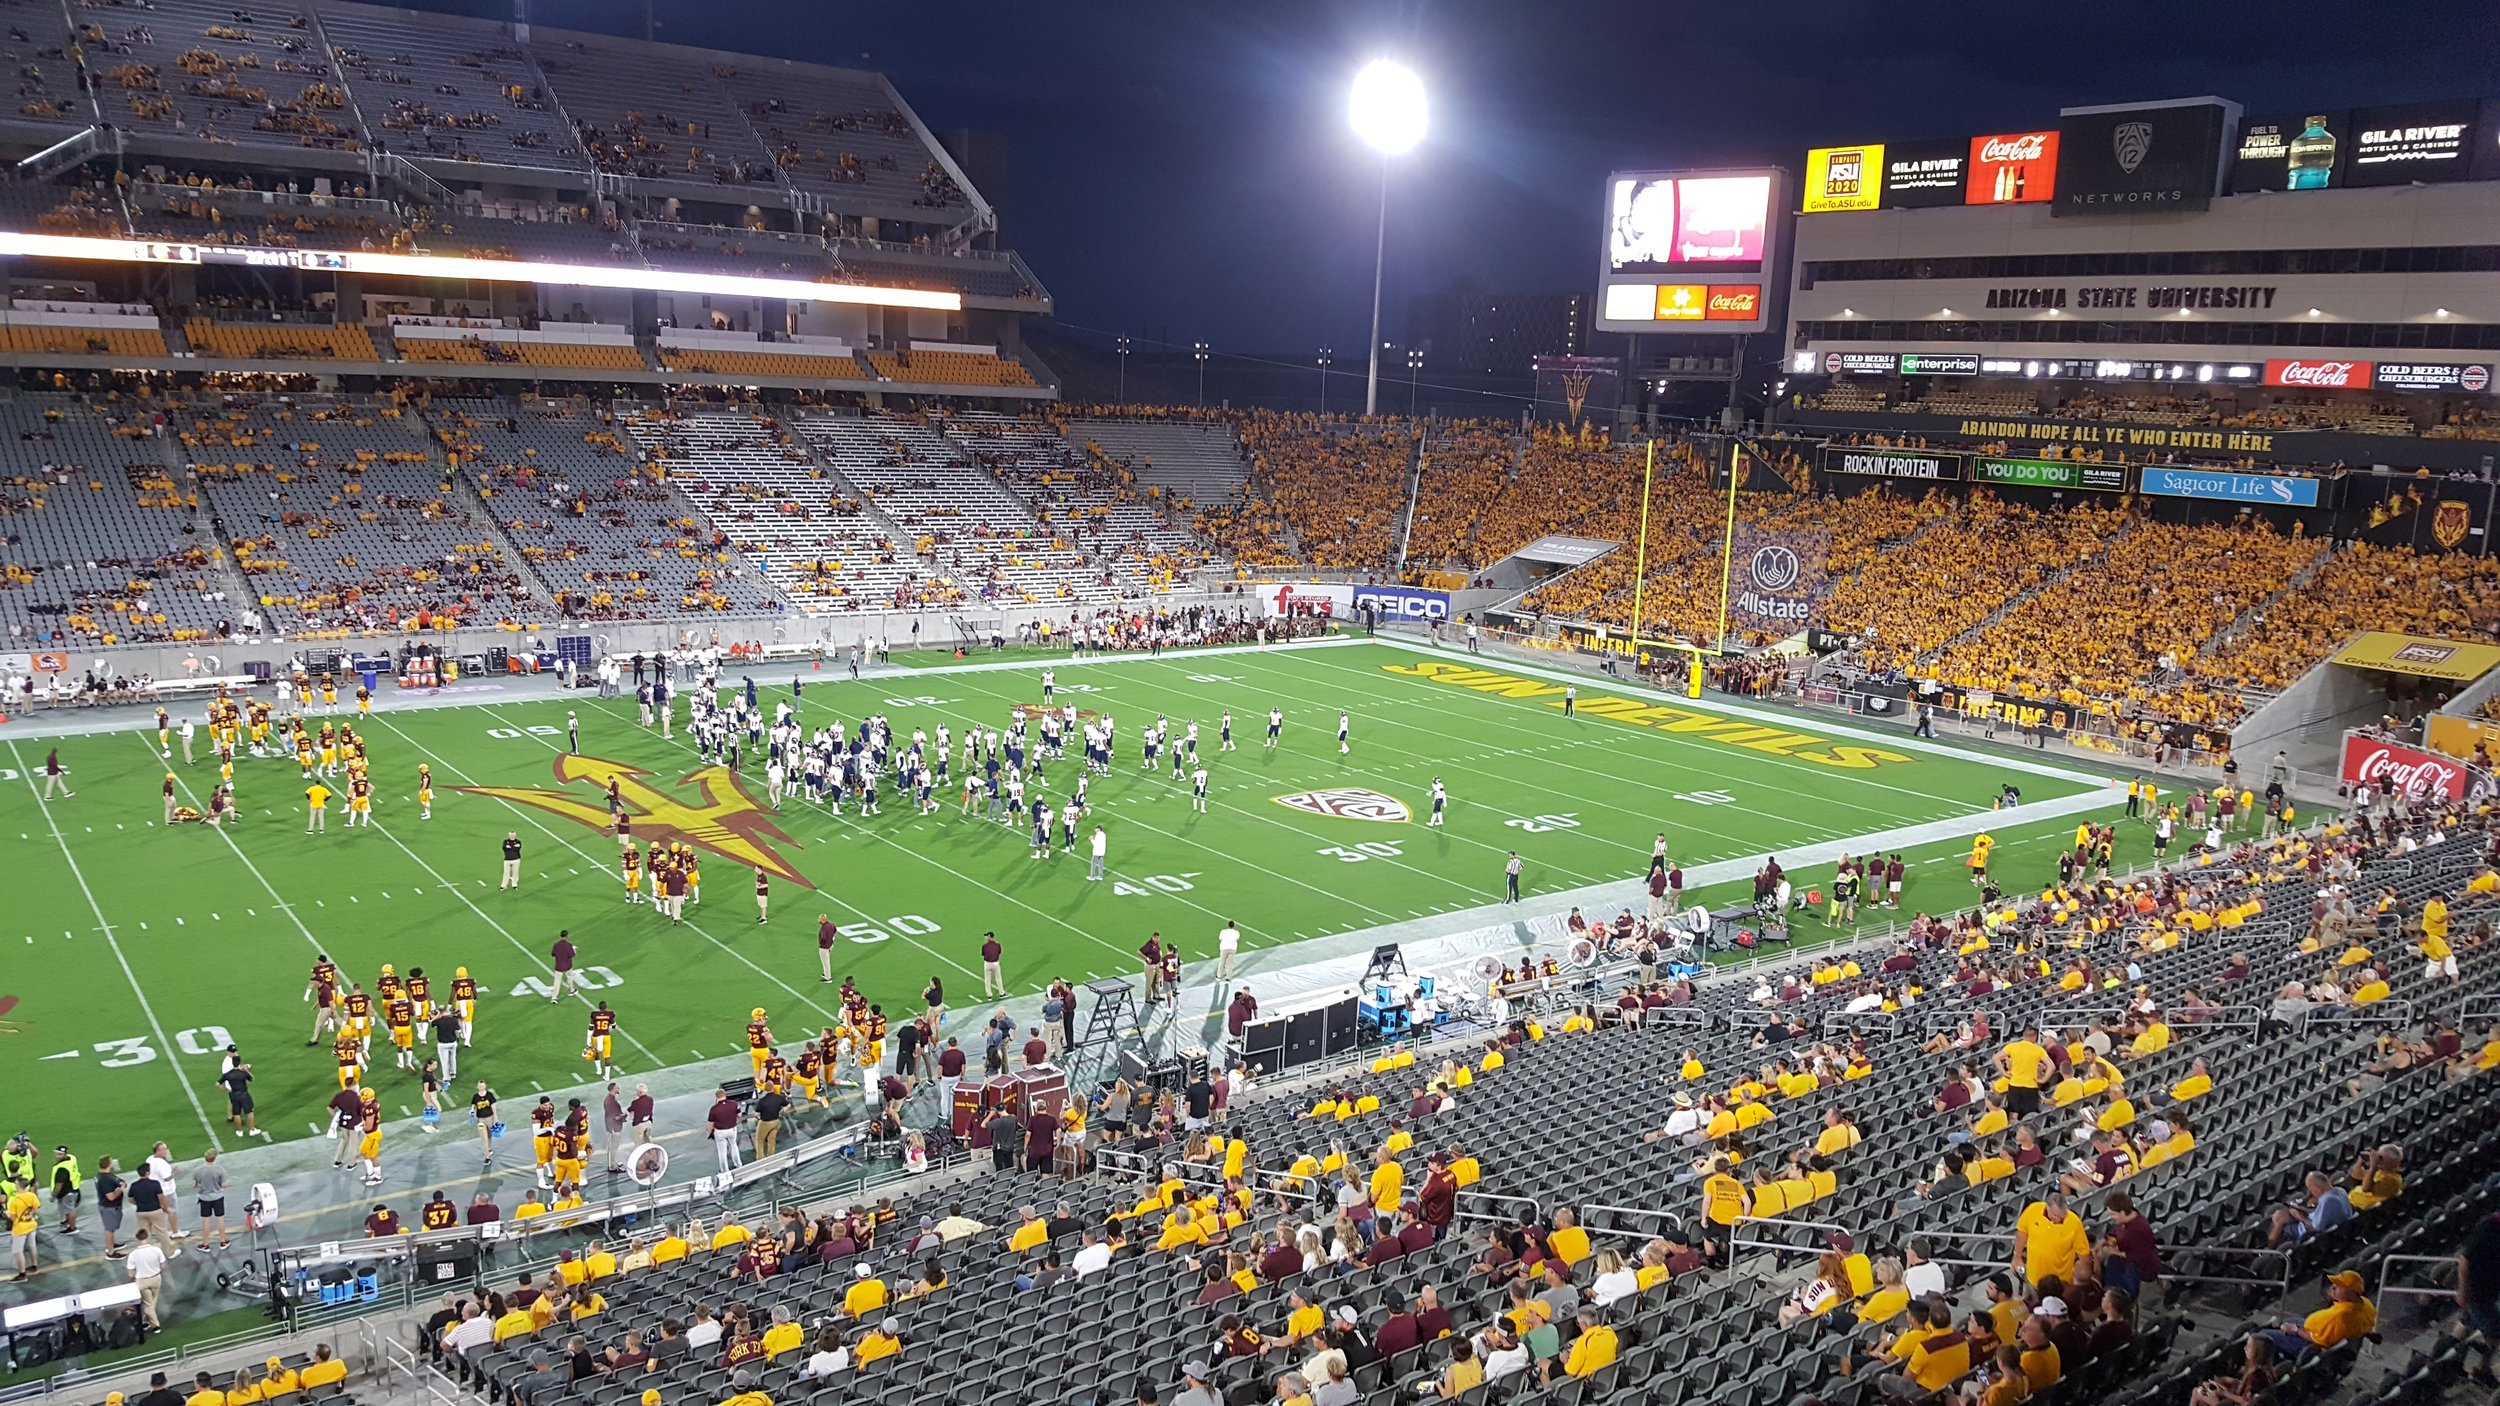 Pre-game stadium warmups for a Sun Devil victory